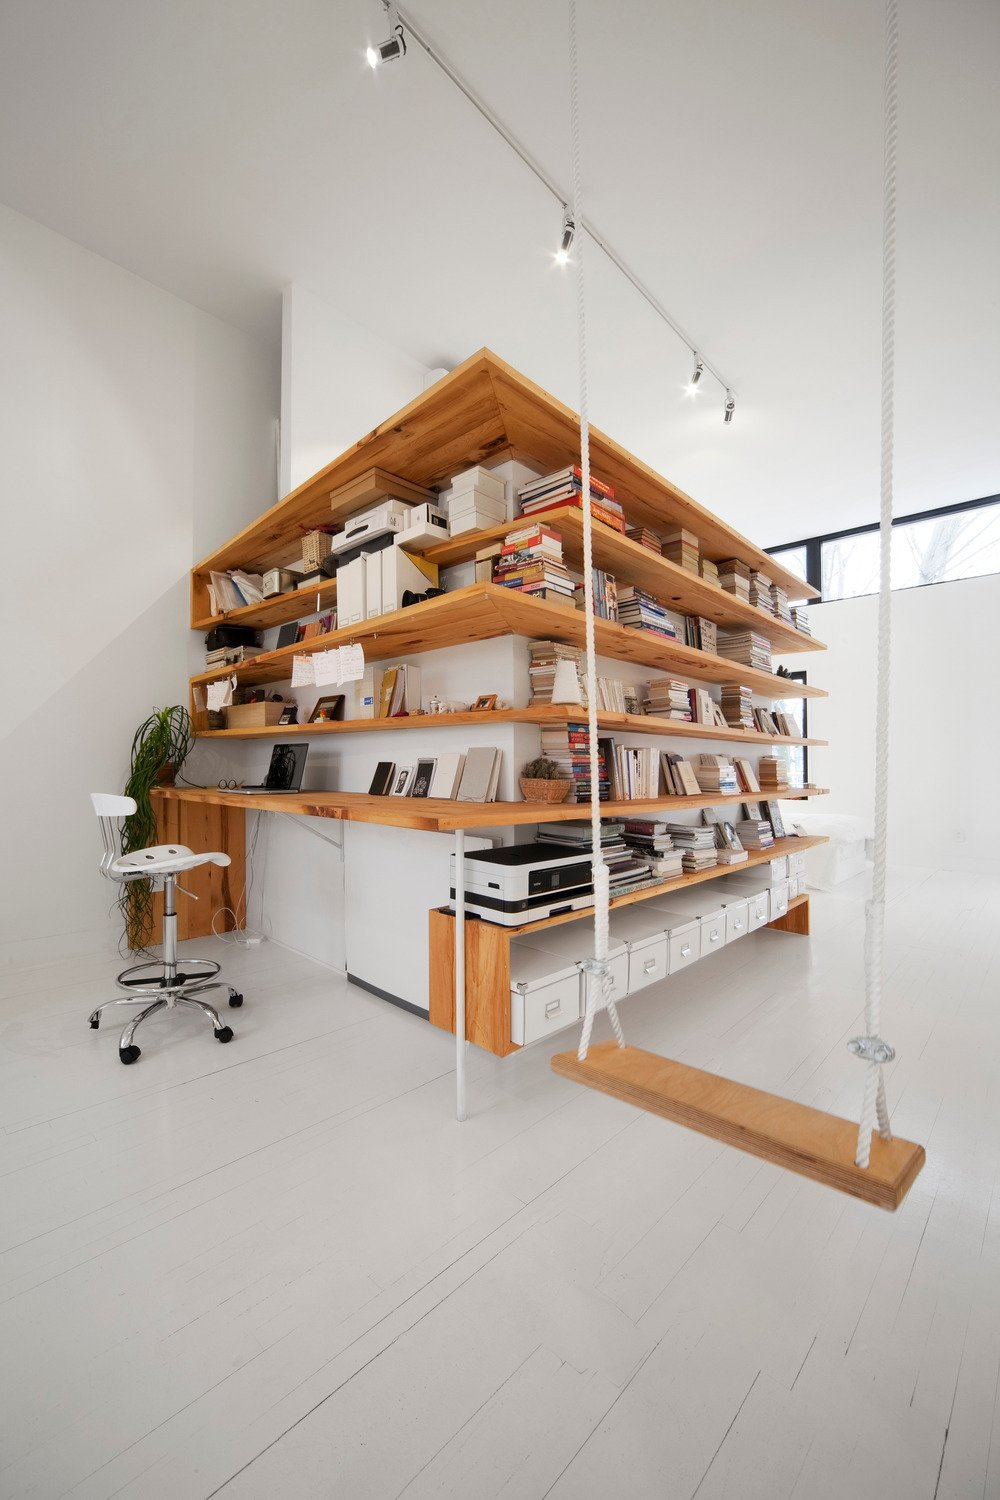 #workplace #office #indoor #interior #inside #swing #desk #shelves #storage #modular #hemlockplanks #white #clean #lighting #minimalist  bookcase from Furniture